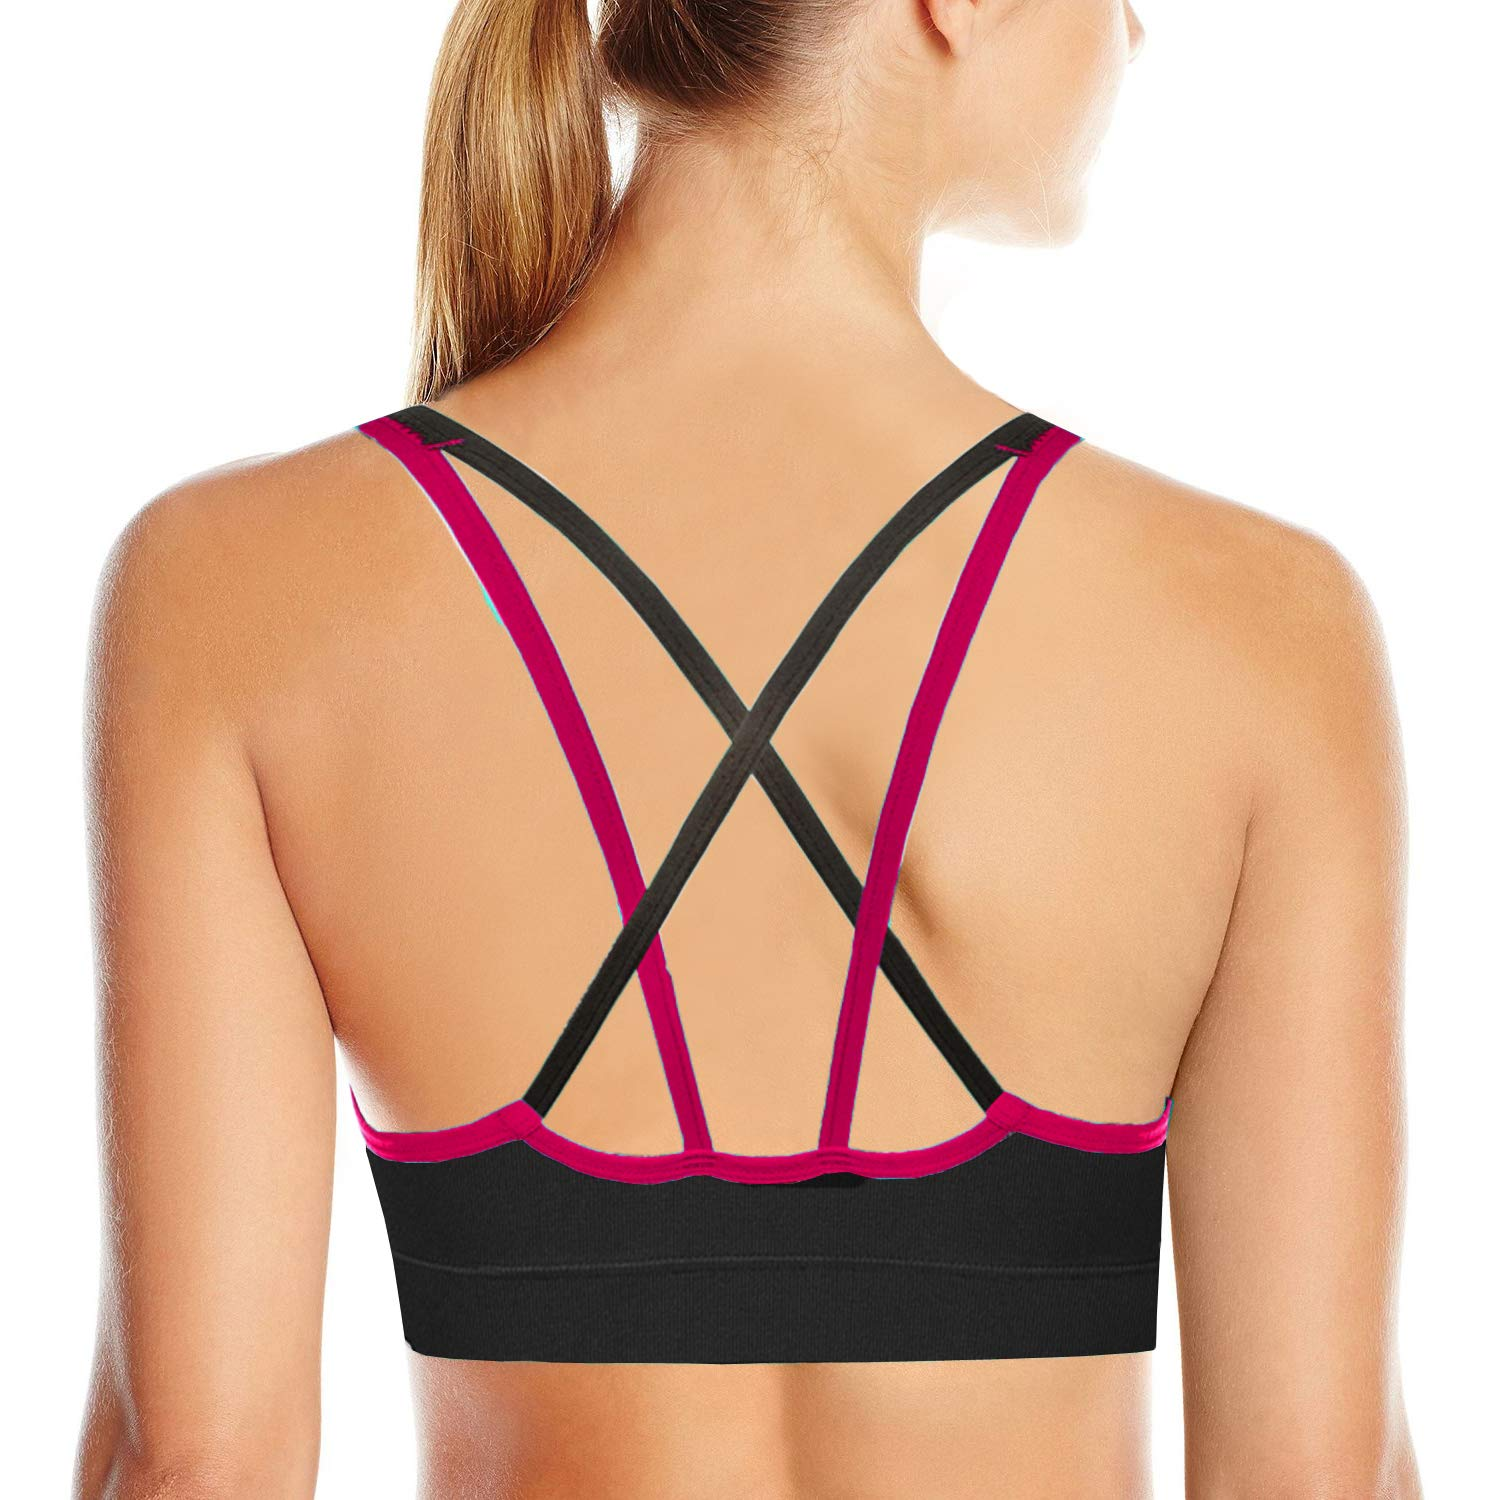 AKAMC Women's Removable Padded Sports Bras Medium Support Workout Yoga Bra 1 Pack,Small